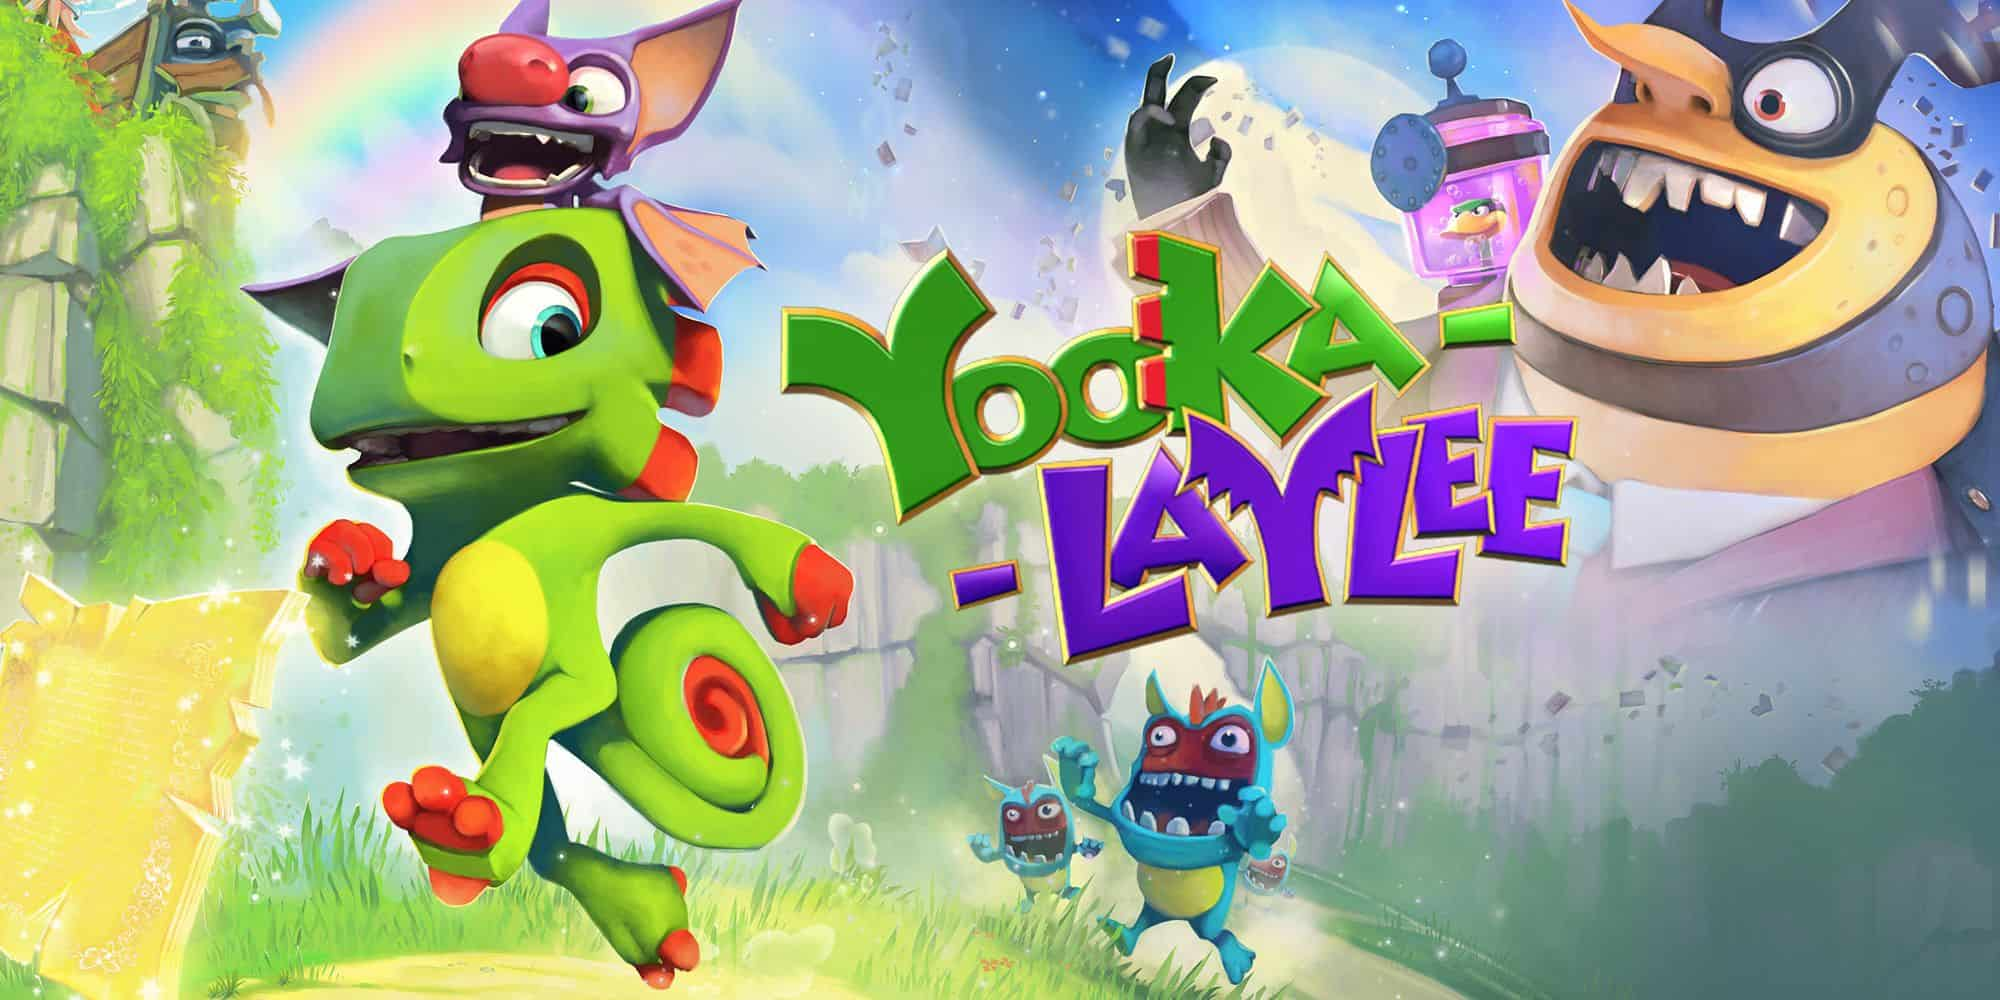 amazon Yooka-Laylee reviews Yooka-Laylee on amazon newest Yooka-Laylee prices of Yooka-Laylee Yooka-Laylee deals best deals on Yooka-Laylee buying a Yooka-Laylee lastest Yooka-Laylee what is a Yooka-Laylee Yooka-Laylee at amazon where to buy Yooka-Laylee where can i you get a Yooka-Laylee online purchase Yooka-Laylee Yooka-Laylee sale off Yooka-Laylee discount cheapest Yooka-Laylee Yooka-Laylee for sale Yooka-Laylee products Yooka-Laylee tutorial Yooka-Laylee specification Yooka-Laylee features Yooka-Laylee test Yooka-Laylee series Yooka-Laylee service manual Yooka-Laylee instructions Yooka-Laylee accessories Yooka-Laylee downloads Yooka-Laylee publisher Yooka-Laylee programs Yooka-Laylee license Yooka-Laylee applications Yooka-Laylee installation Yooka-Laylee best settings